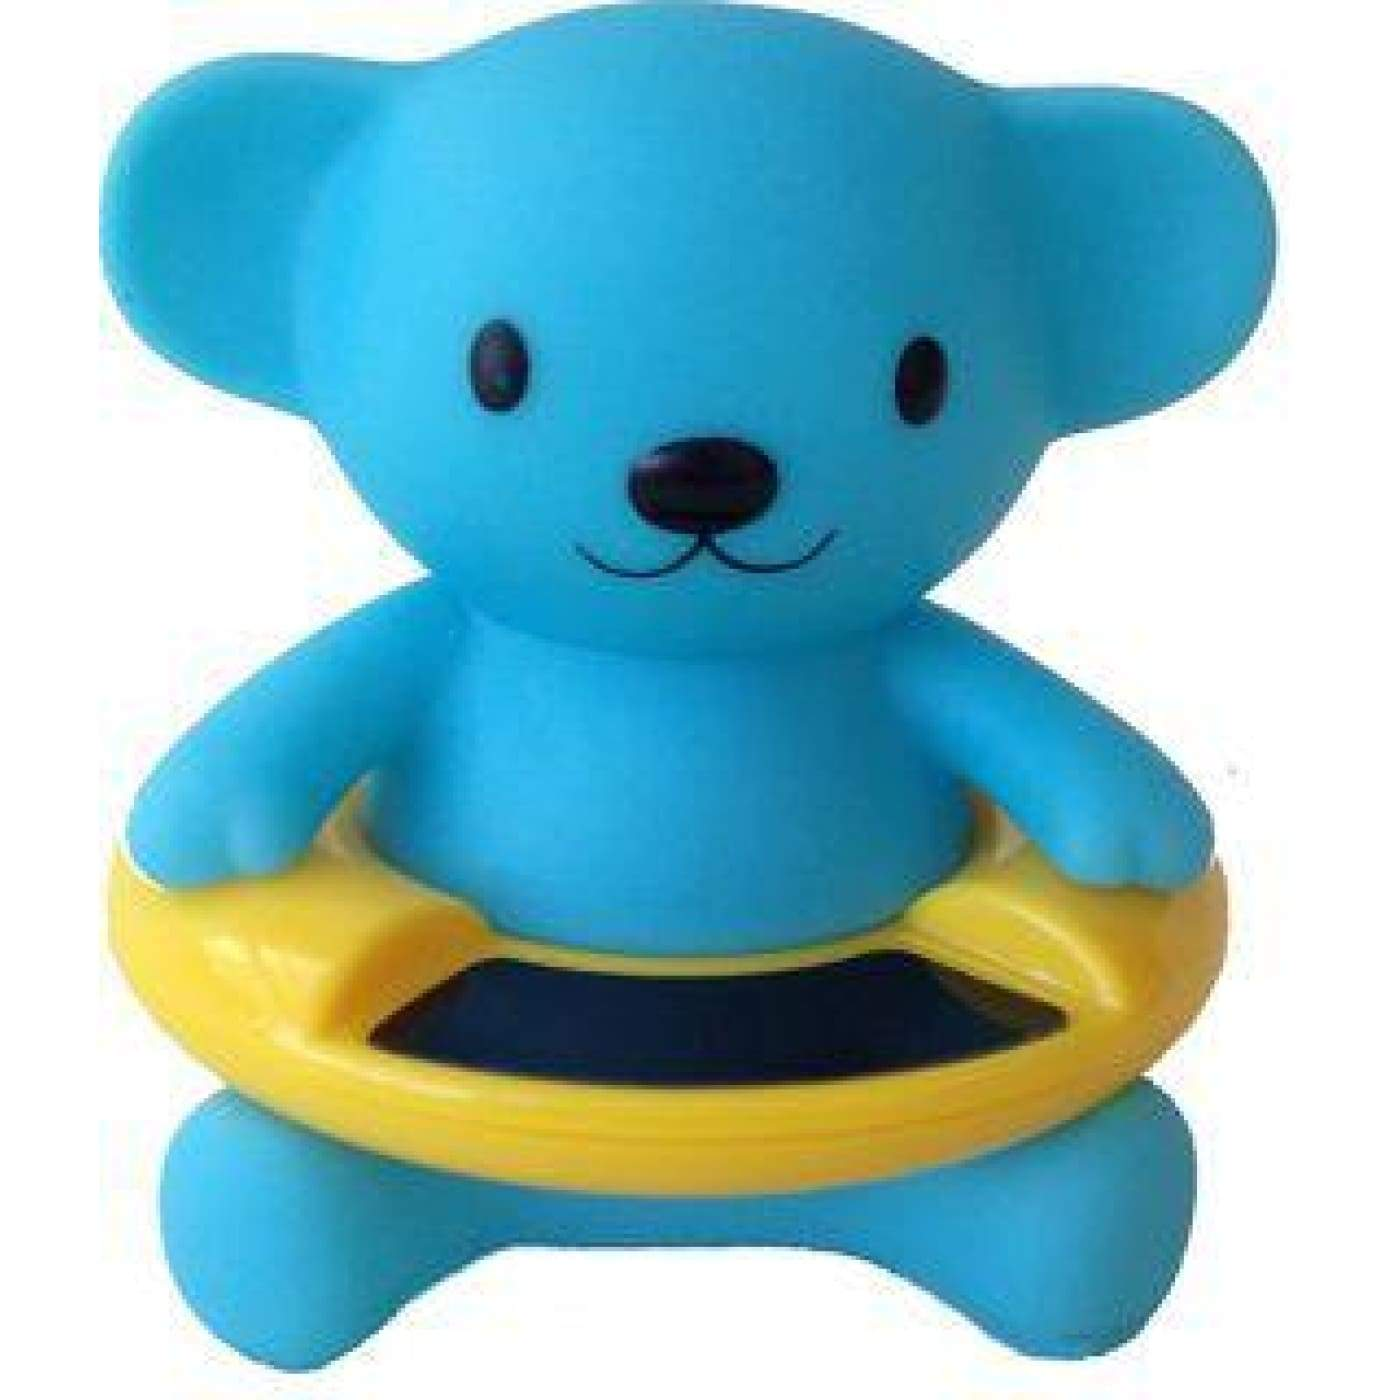 Binnie Bath Thermometer - Teddy - HEALTH & HOME SAFETY - THERMOMETERS/MEDICINAL